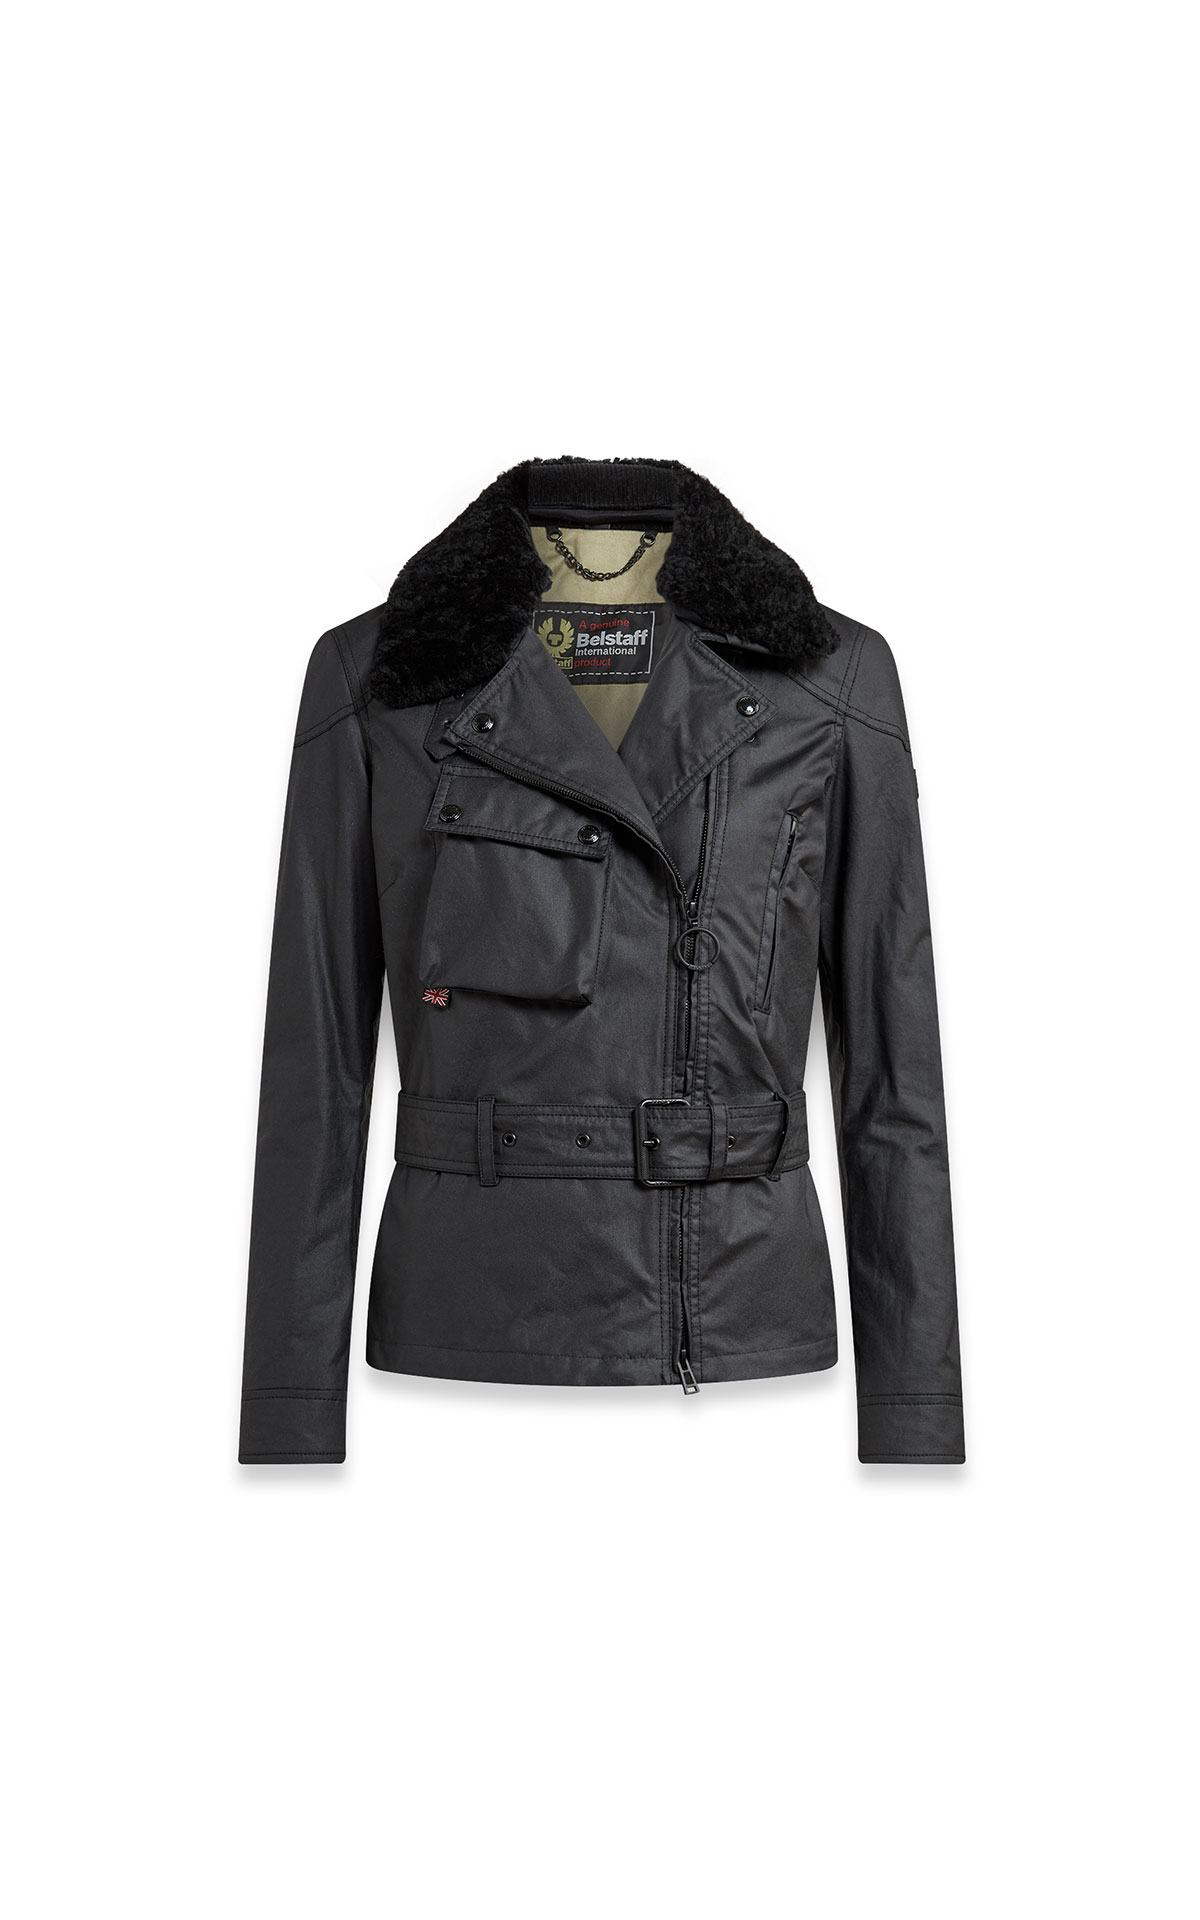 Belstaff Sammy miller jacket from Bicester Village